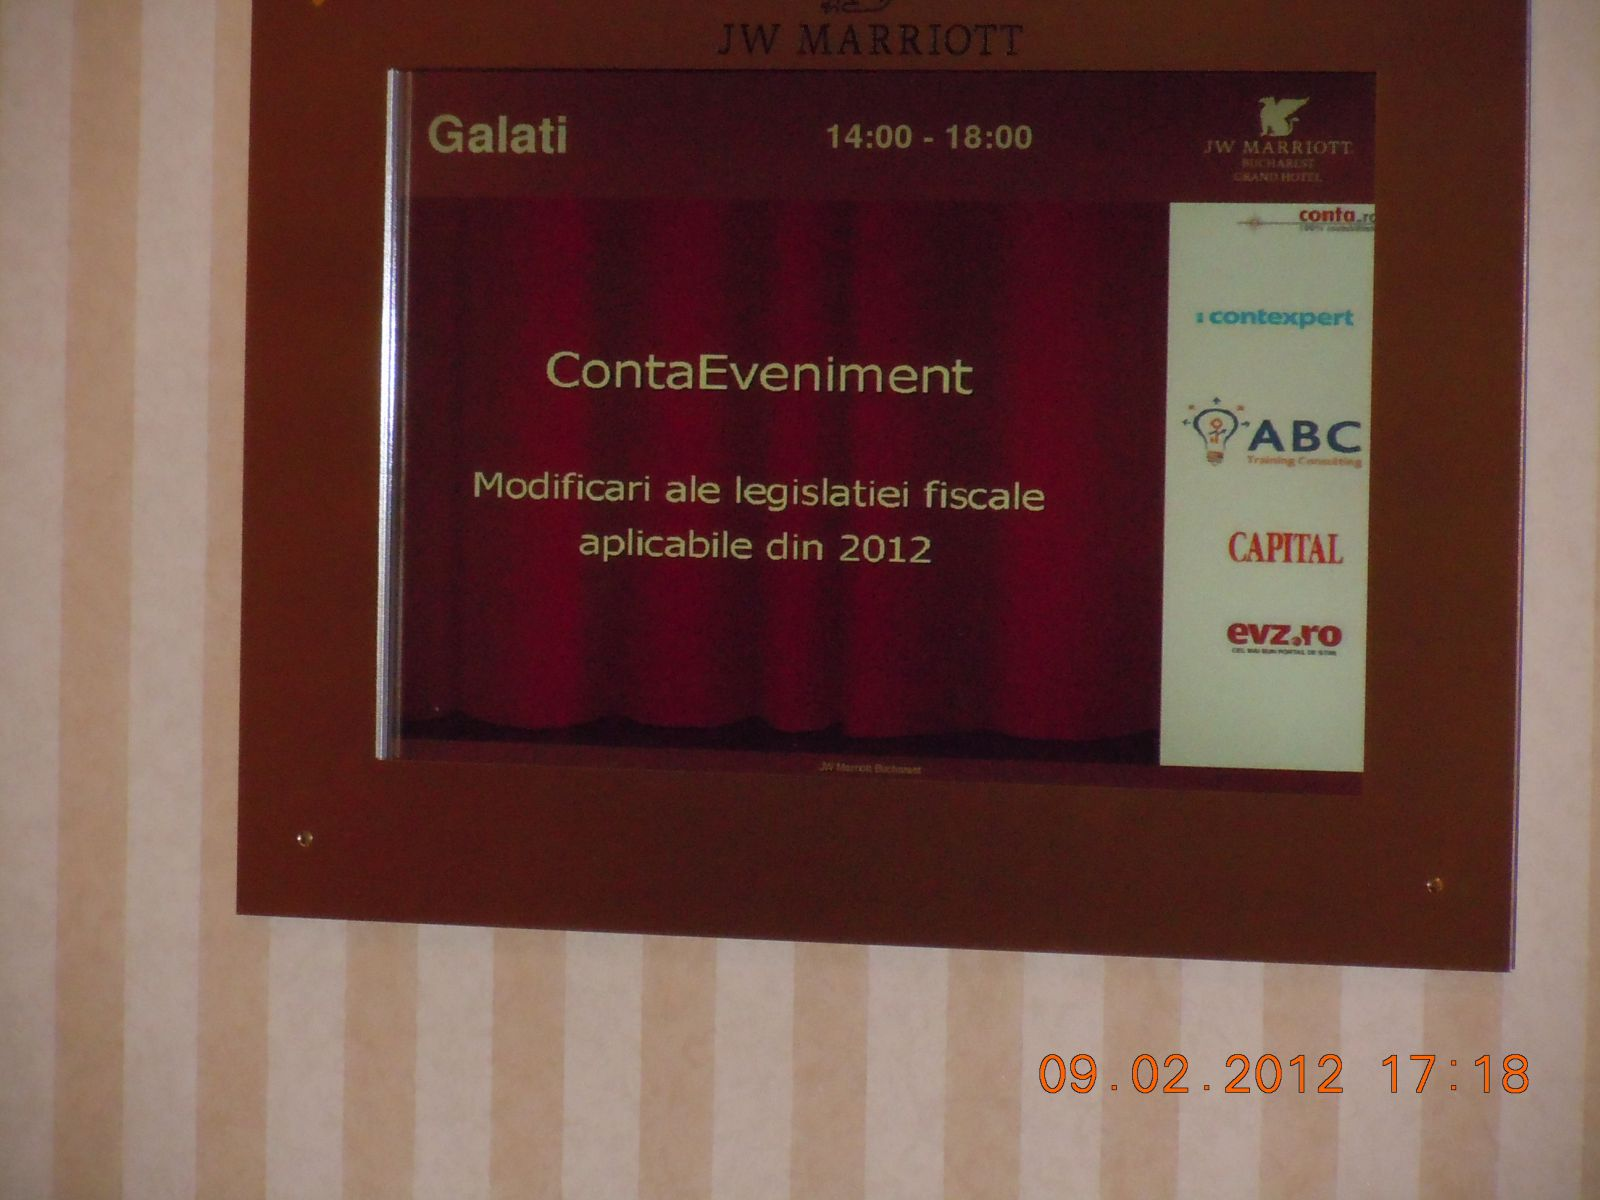 ContaEveniment 9 feb 2012